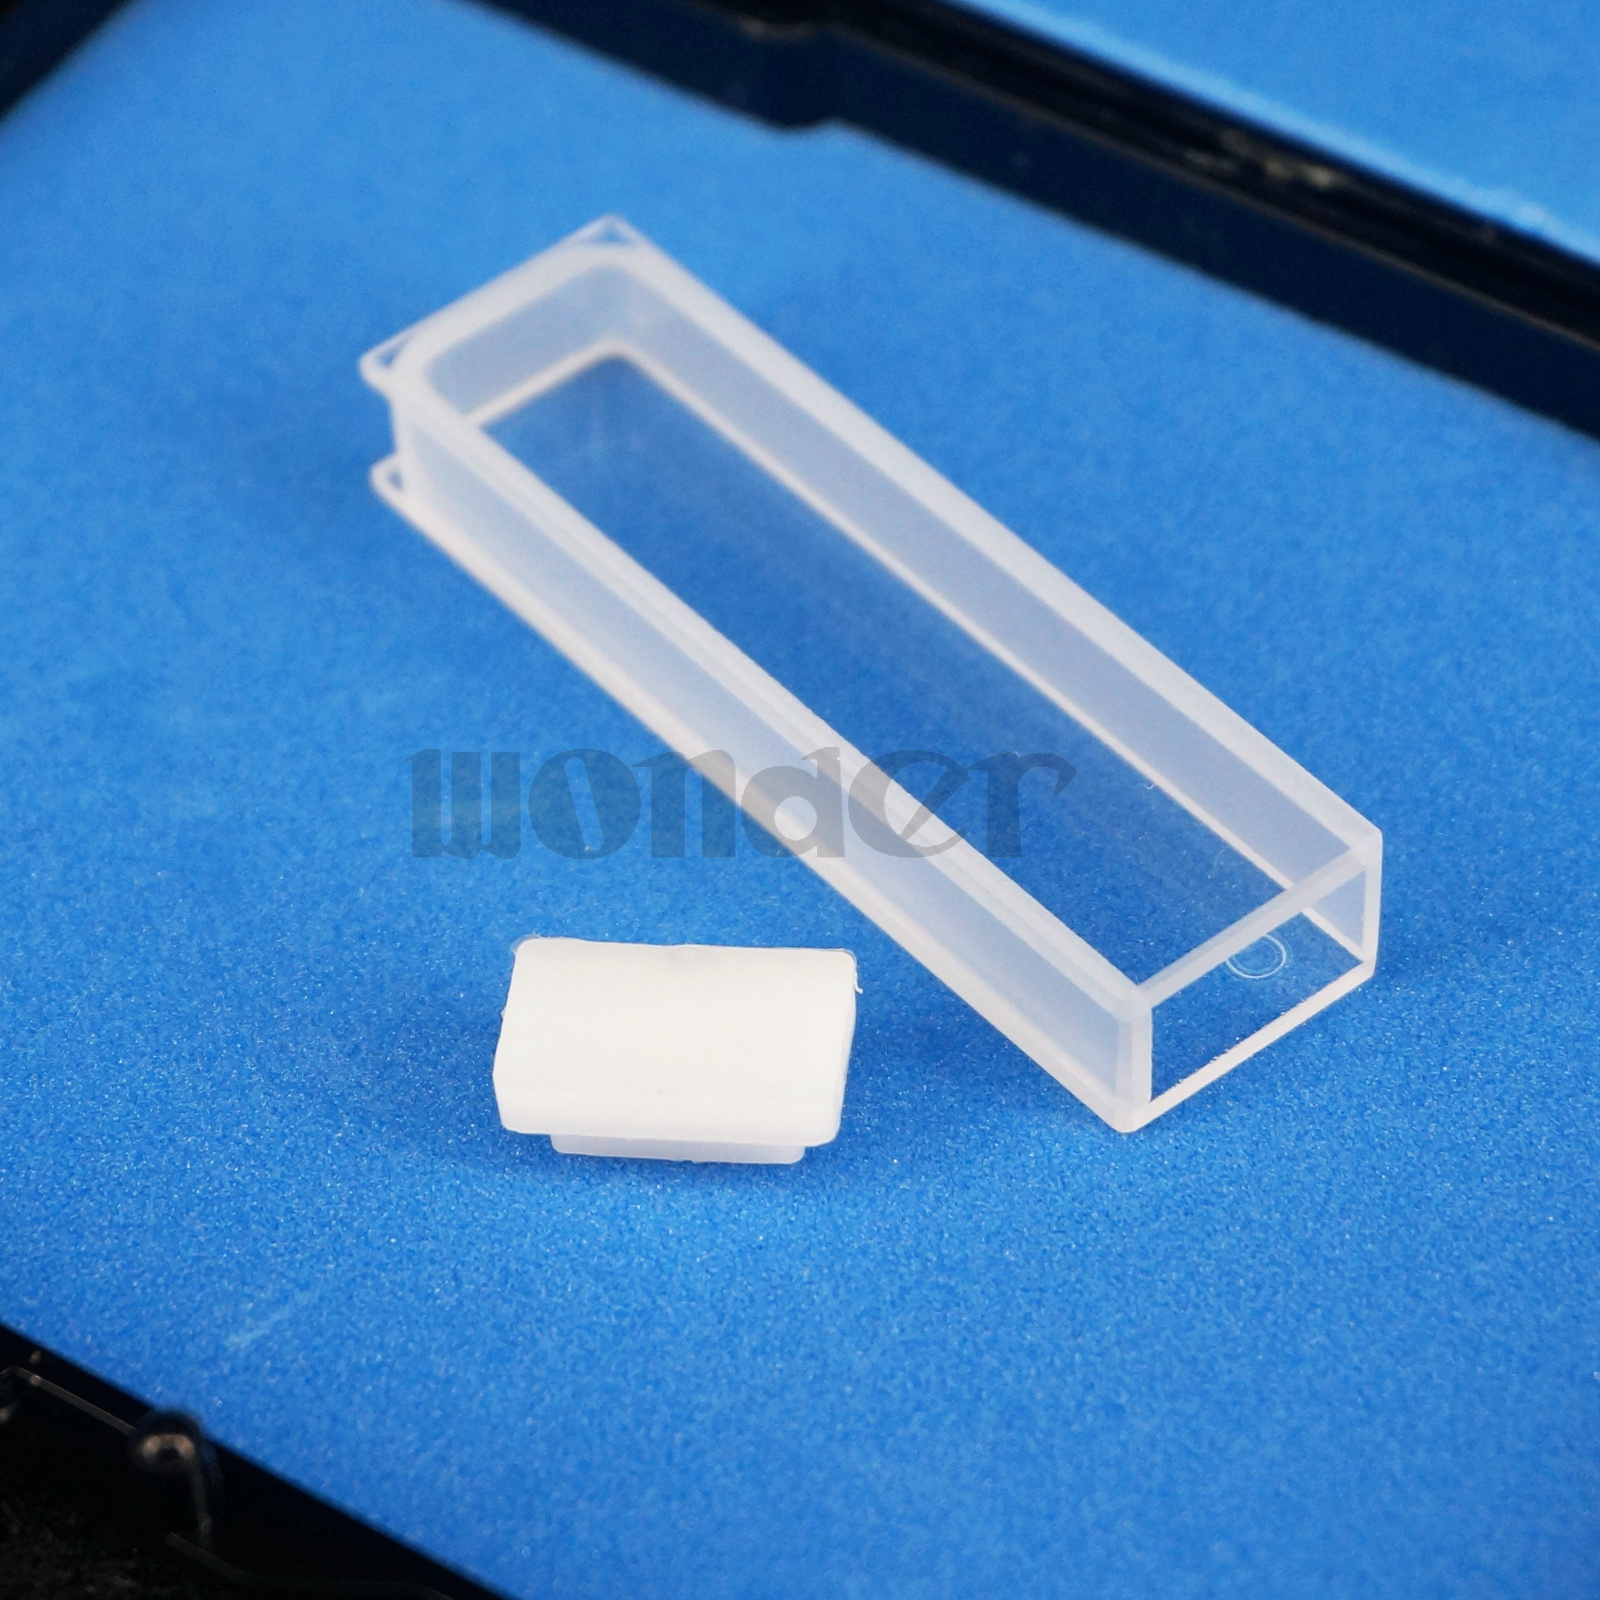 Details about 5mm Path Length JGS1 Quartz Cuvette Cell With Lid For Uv  Spectrophotometers